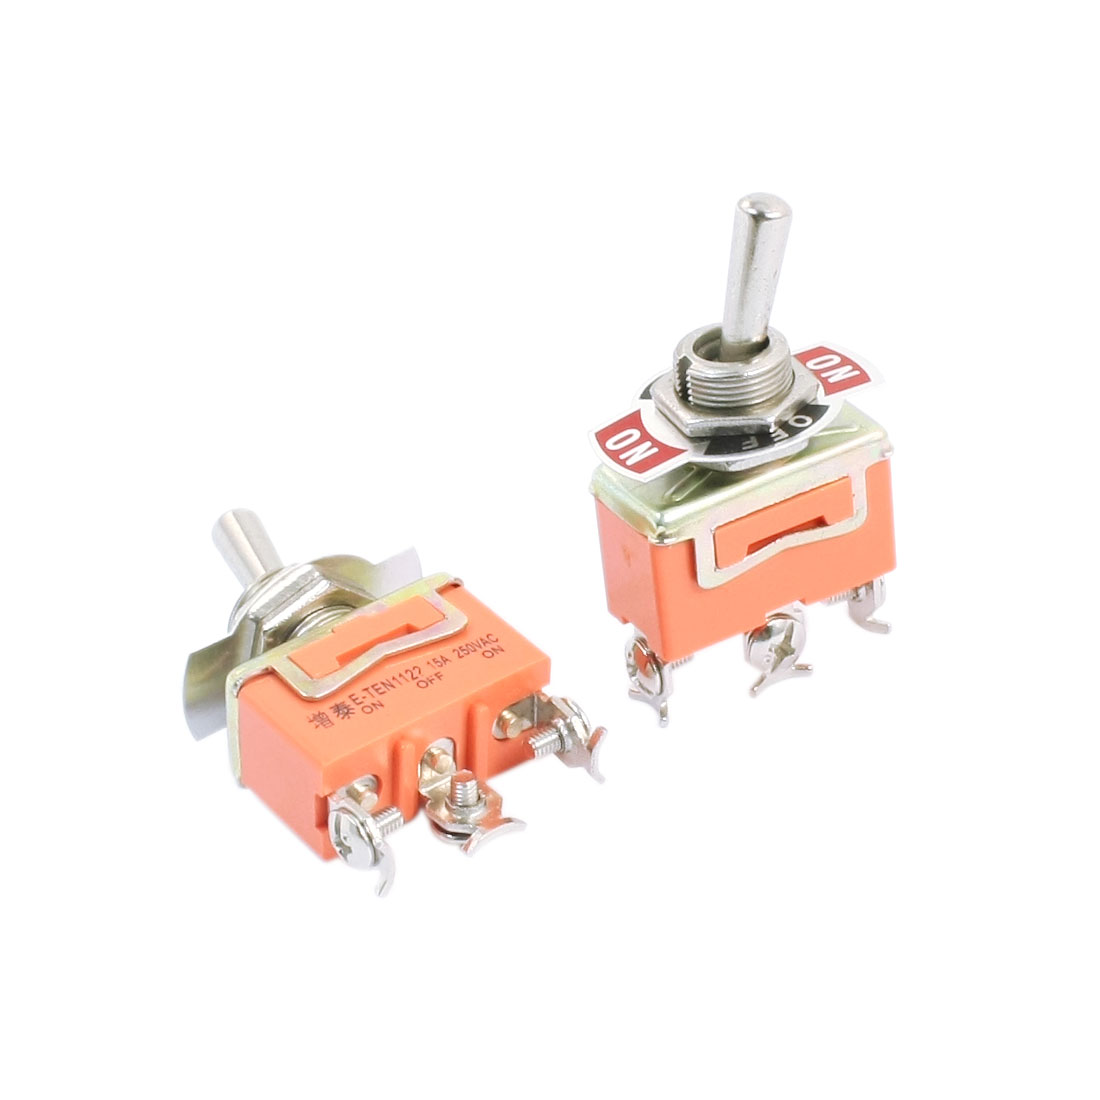 2pcs Latching SPDT 3 Positions ON/OFF/ON 3-Terminals Toggle Switch AC250V 15A